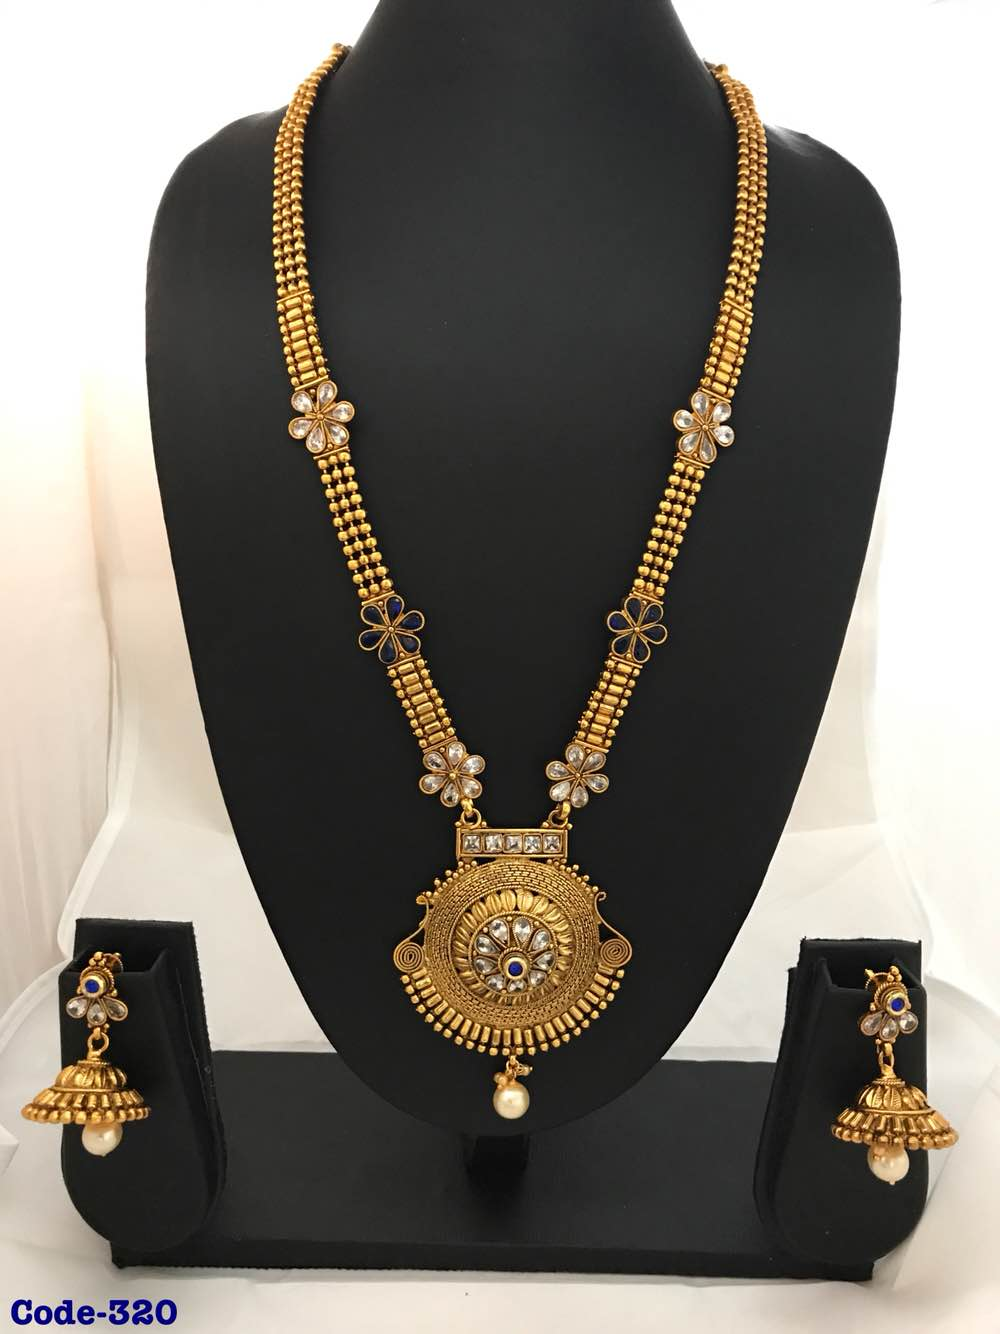 Long necklace indian jewellery indian polki jewellery traditional jewellery jewellery at wholesale price manufacturing in malad expoter Mumbai wholesale market Malad wholesale market Jewellery wholesale market Indian fashion jewellery market Traditional jewellery wholesale market